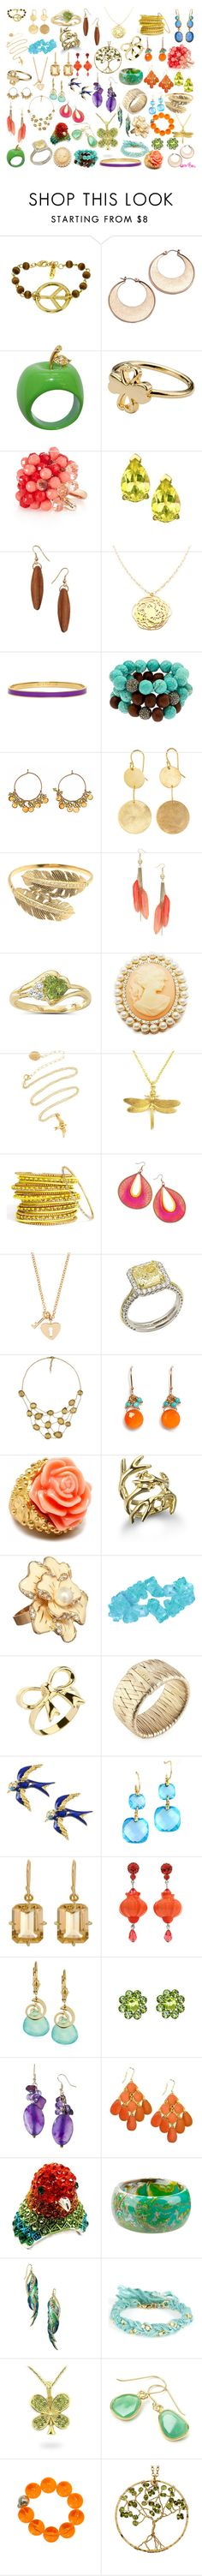 """Spring Jewelry"" by chas23 ❤ liked on Polyvore featuring Ettika, Nine West, Dollydagger, Juicy Couture, Dorothy Perkins, Kyler by Joy O, Kate Spade, Krystal Sasso, Calico Juno and Morra Designs"